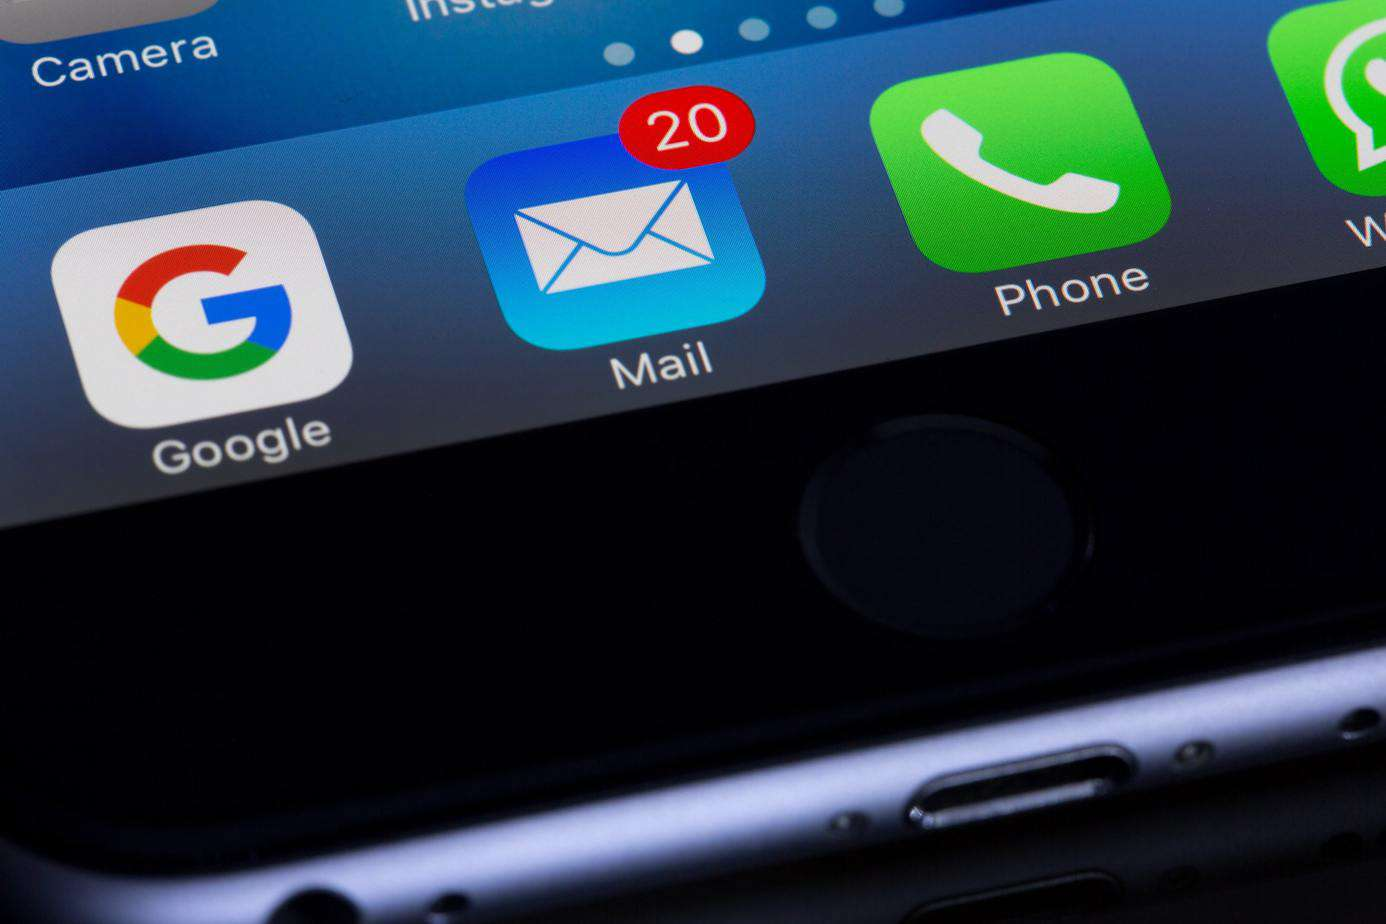 iPhone Screen with Mail icon - Photo by Torsten Dettlaff from Pexels